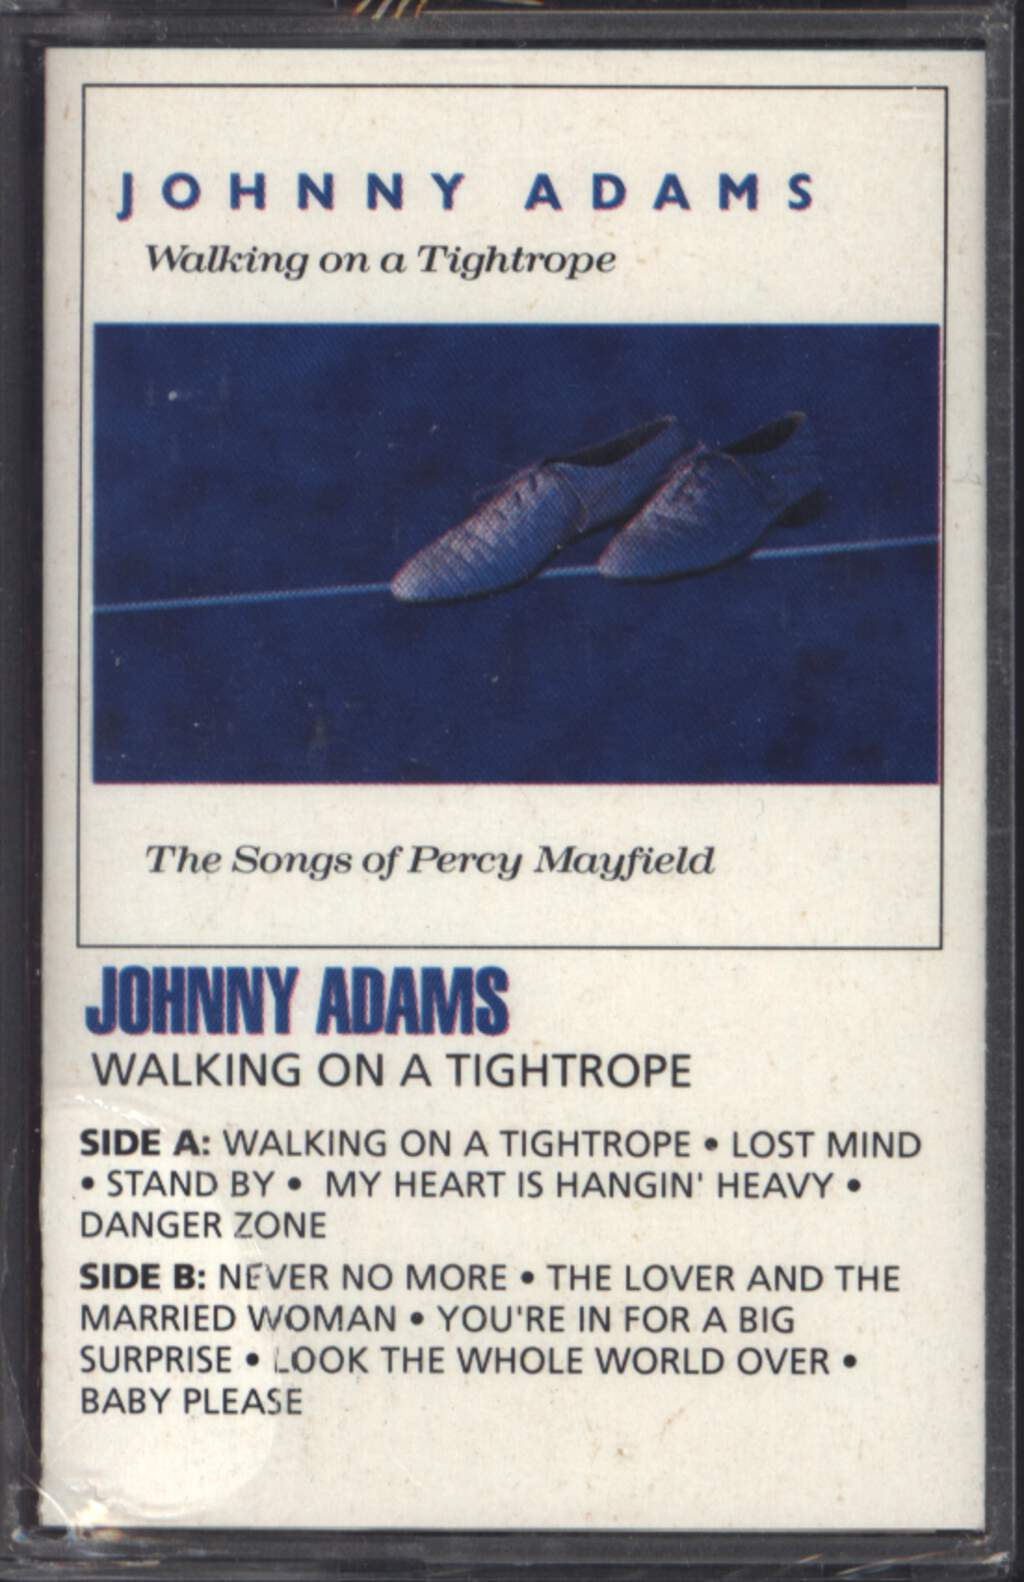 Johnny Adams: Walking On A Tightrope – The Songs Of Percy Mayfield, Compact Cassette